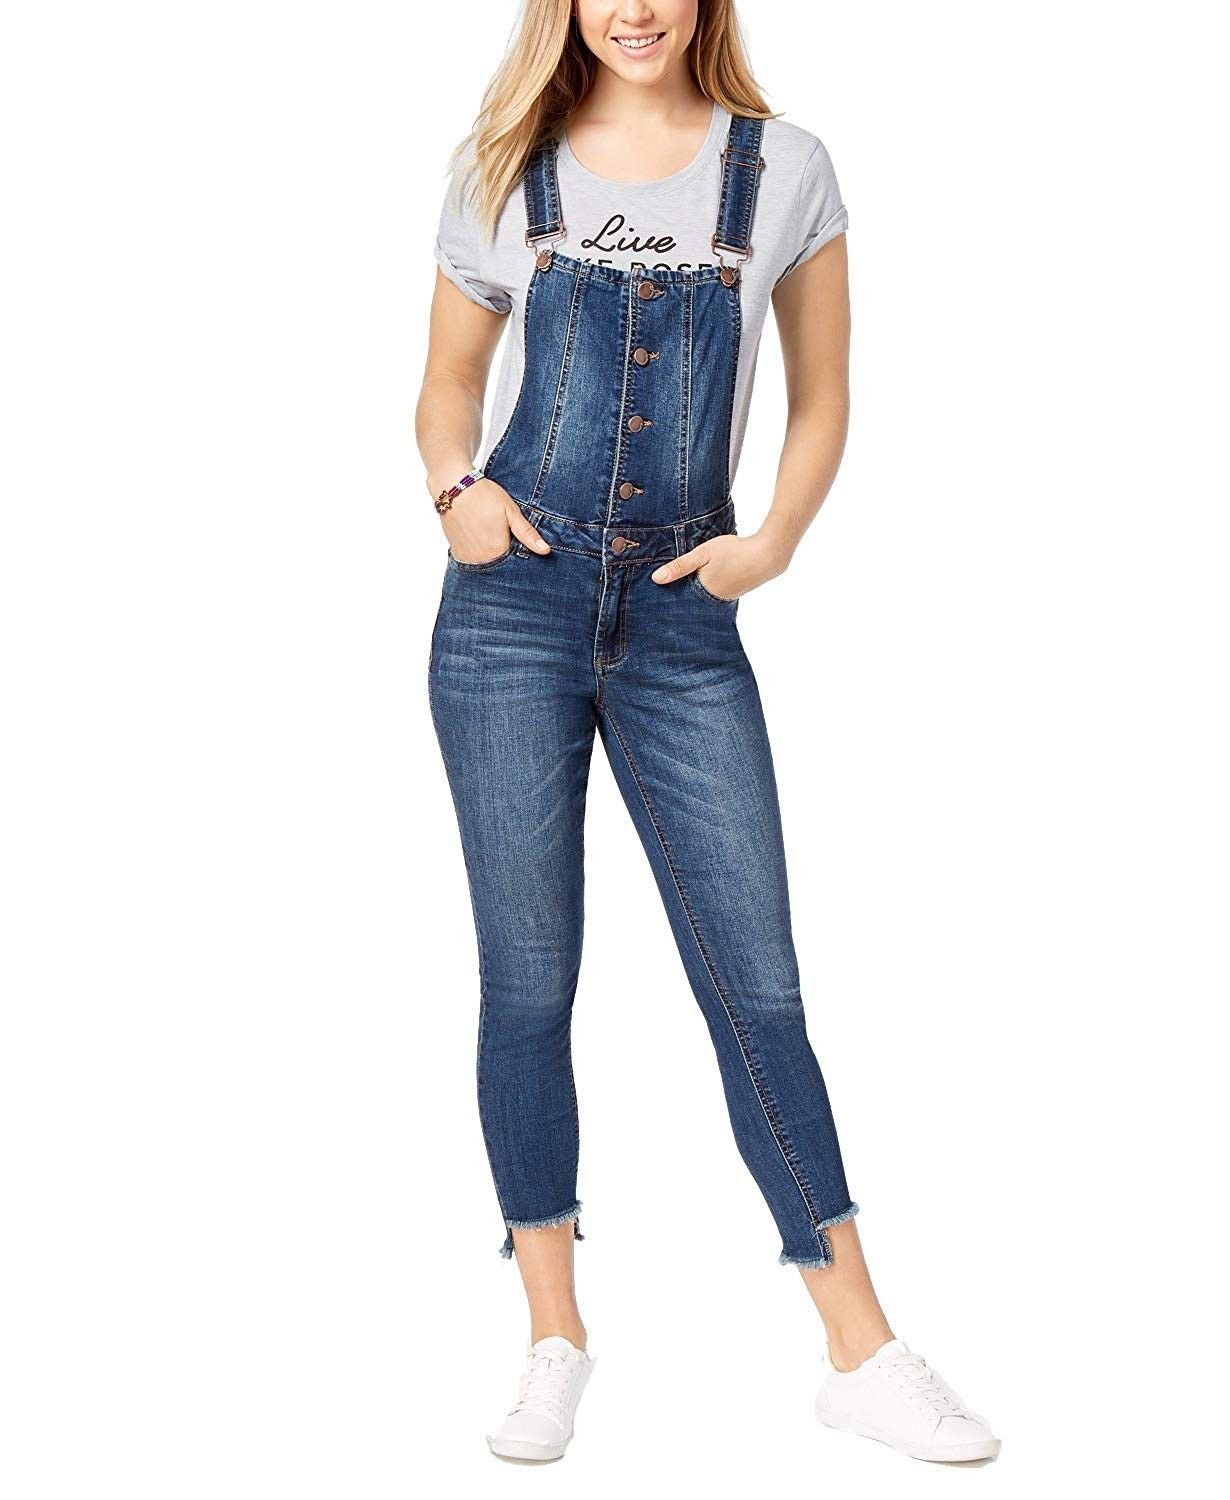 NEW WOME/'NS DENIM BLUE BLACK STRETCH SKINNY JEANS DUNGAREES UK SIZE 8-14